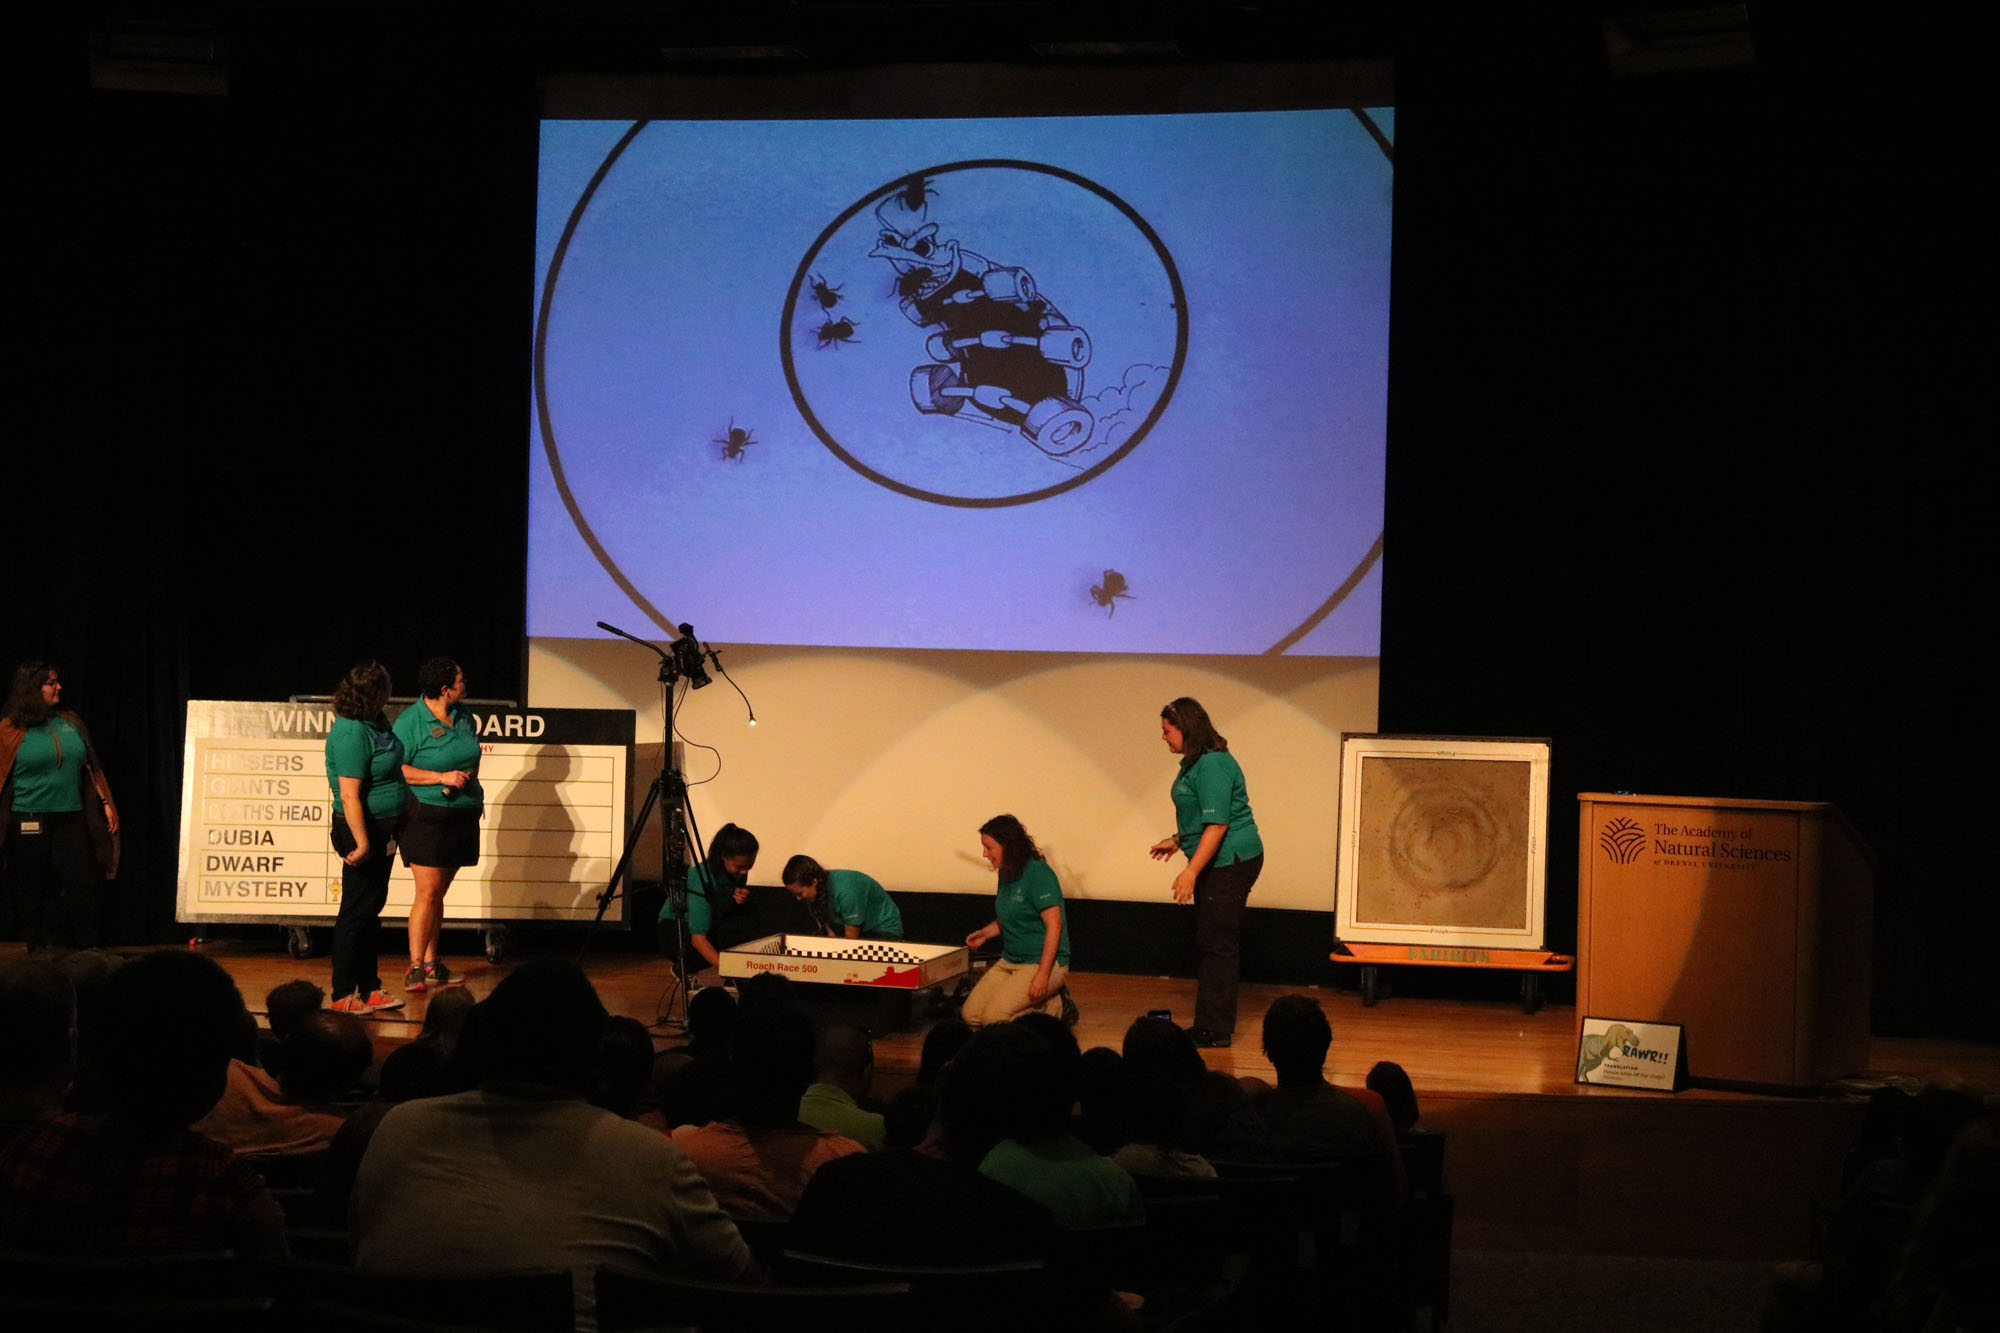 Roach race at Bug Fest. Educators on stage, bugs on big screen